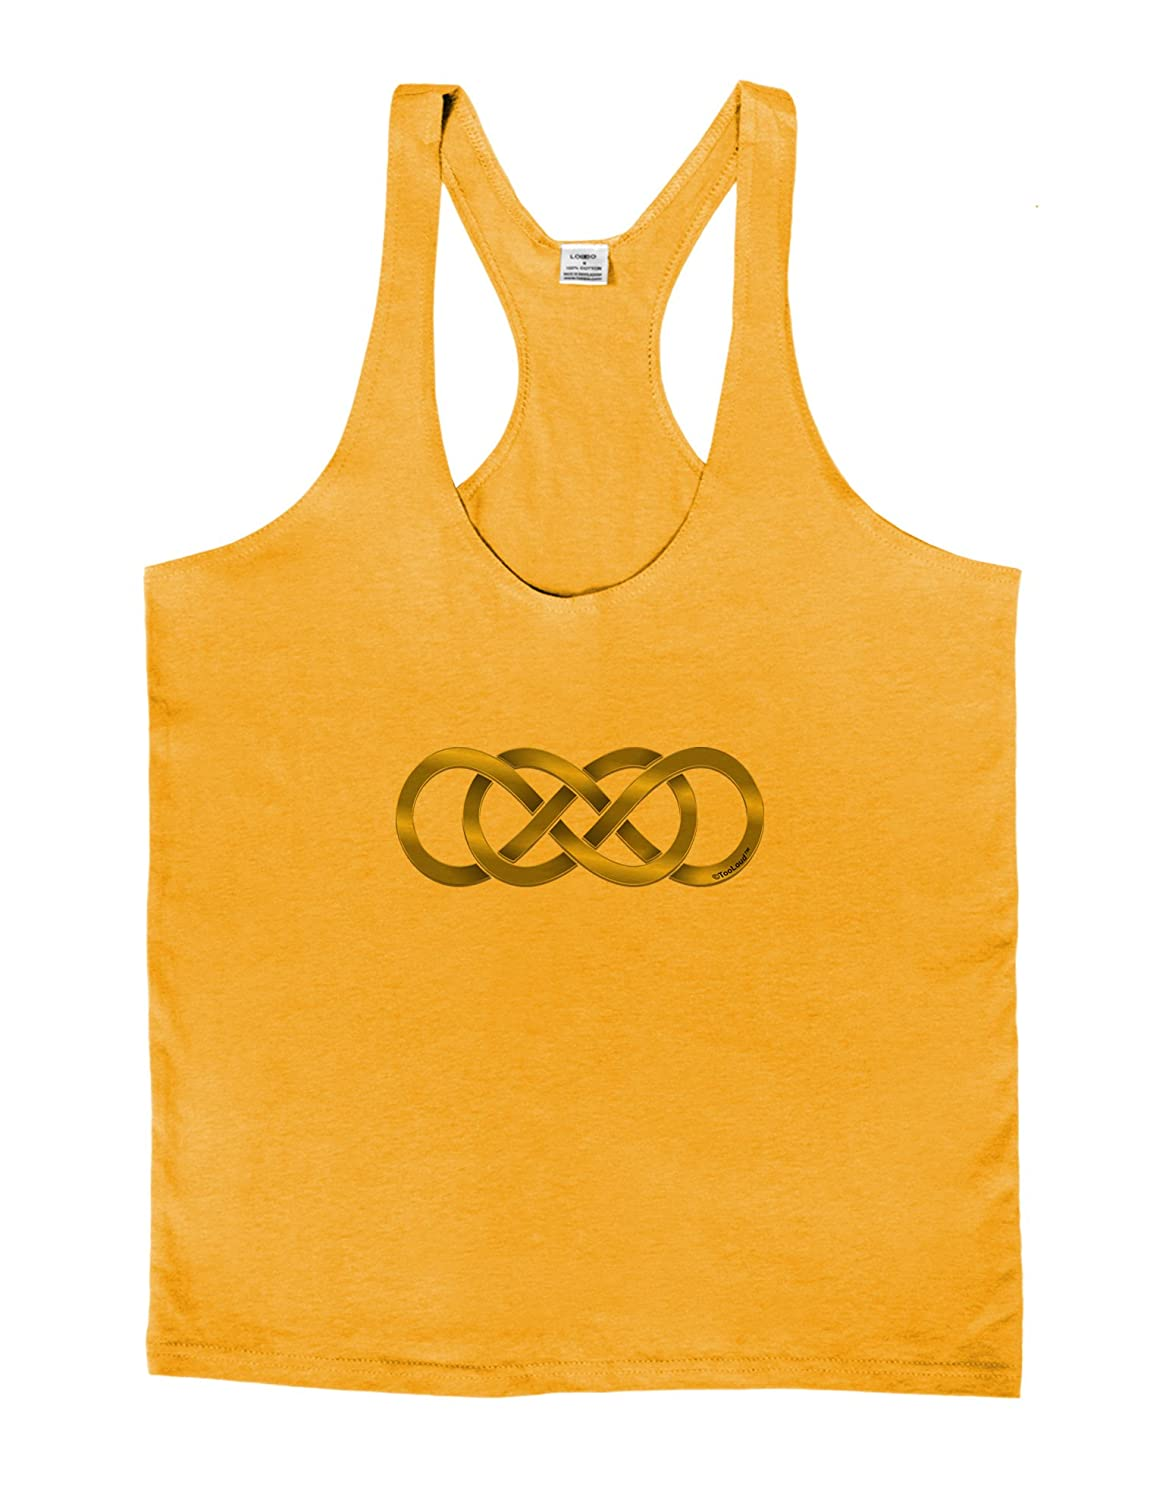 LOBBO TooLoud Double Infinity Gold Mens String Tank Top